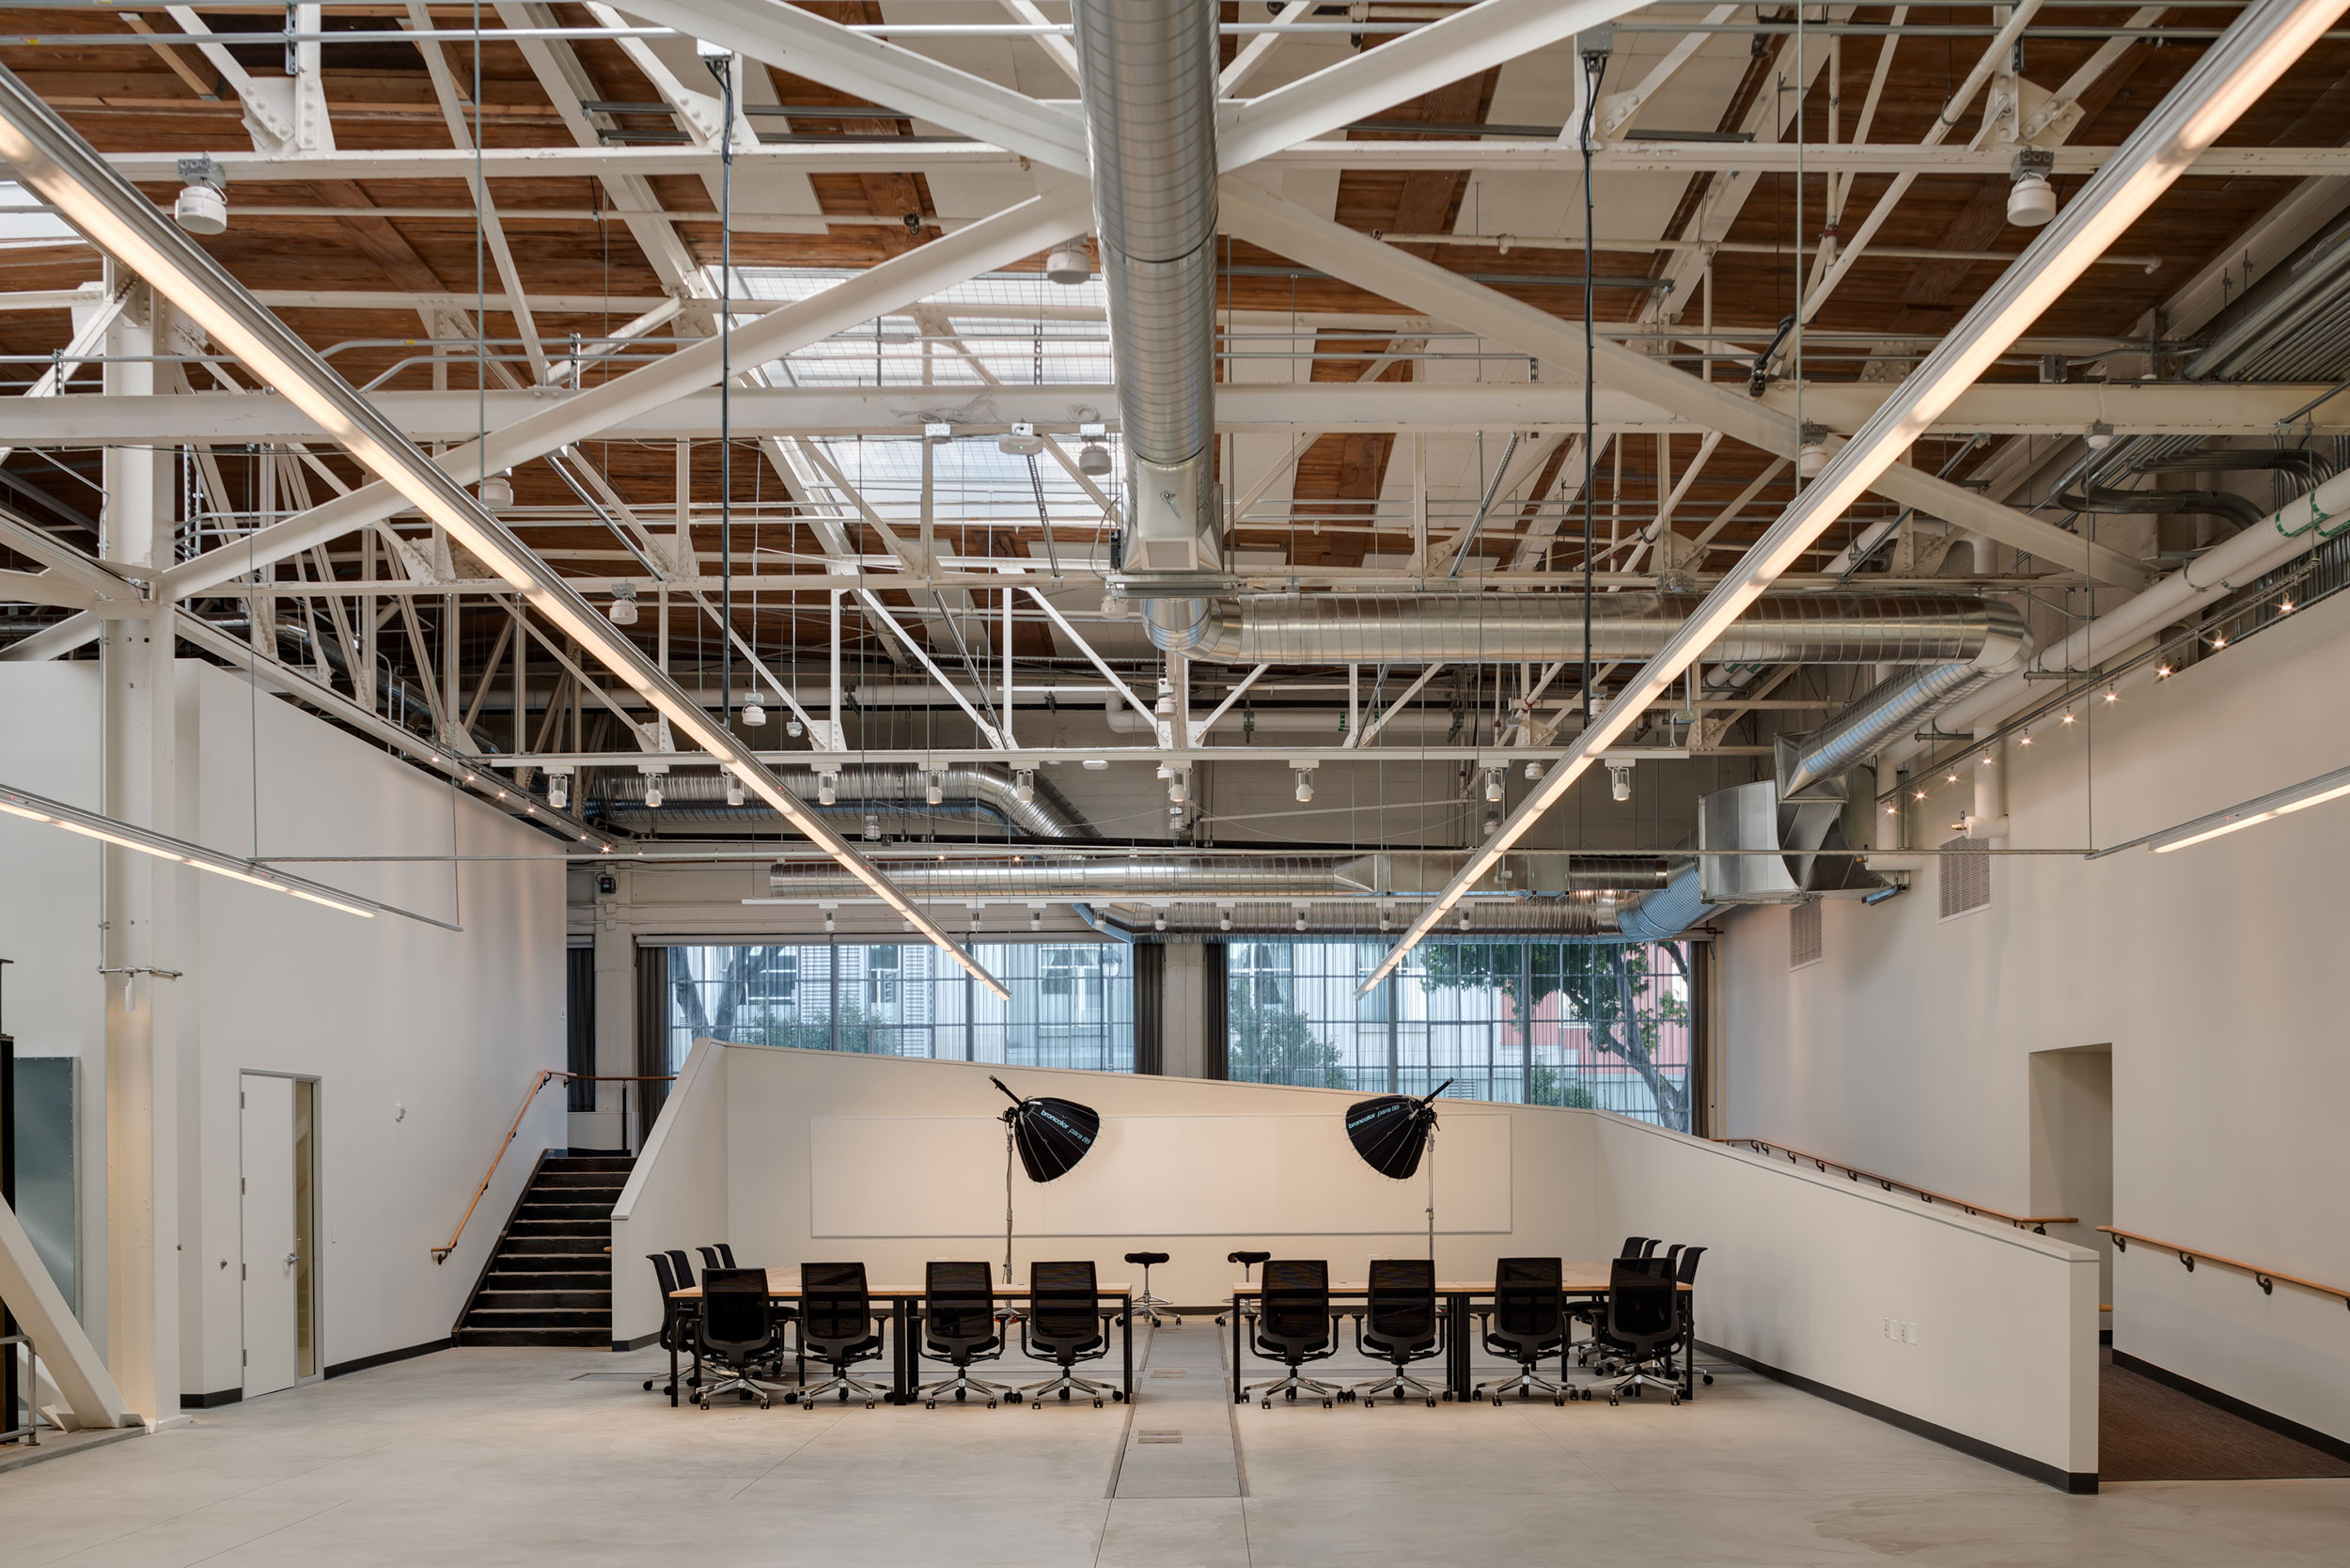 San Francisco Workplace, Office, Adaptive Reuse, Tech Company, Open Workspace, Flexible Office, Natural Light, Universal Design, Accessible Ramp